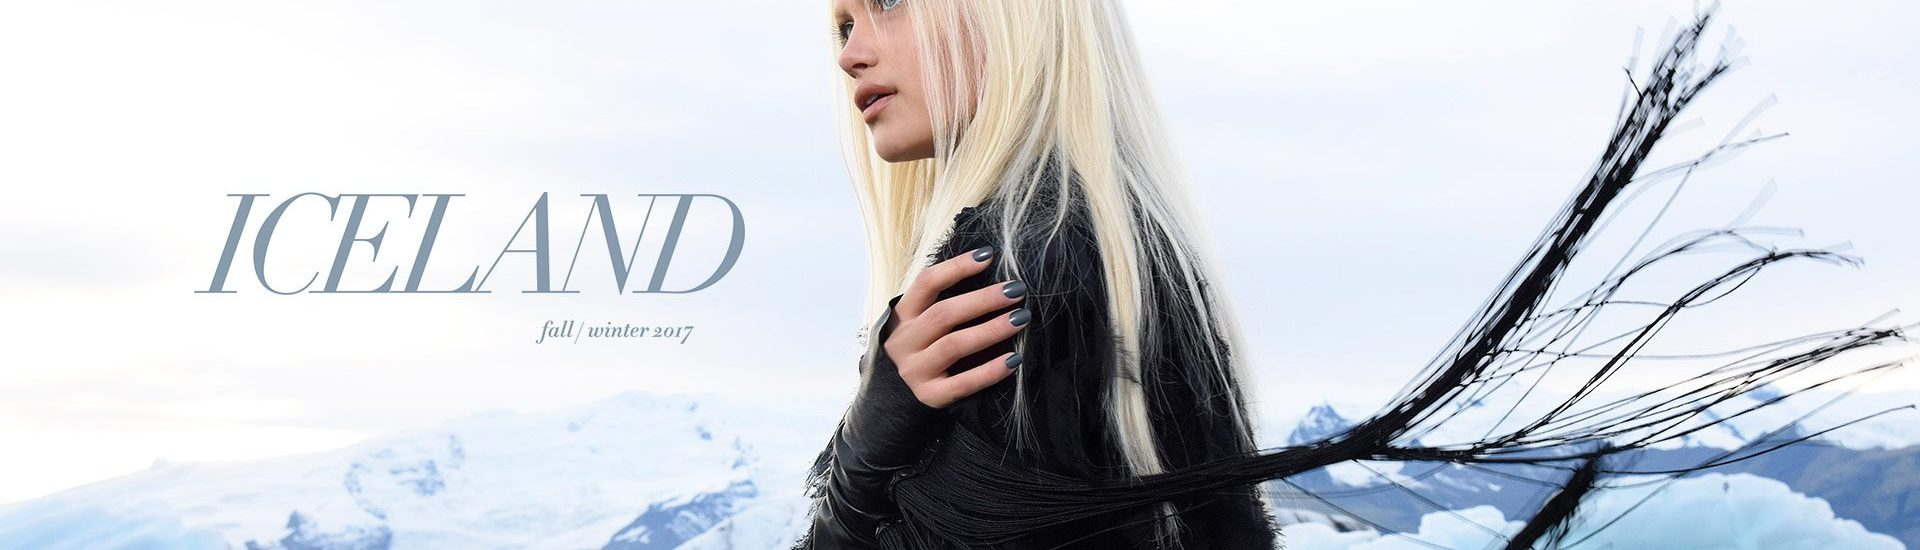 OPI-Iceland-CollectionsMainBanner-1920x800